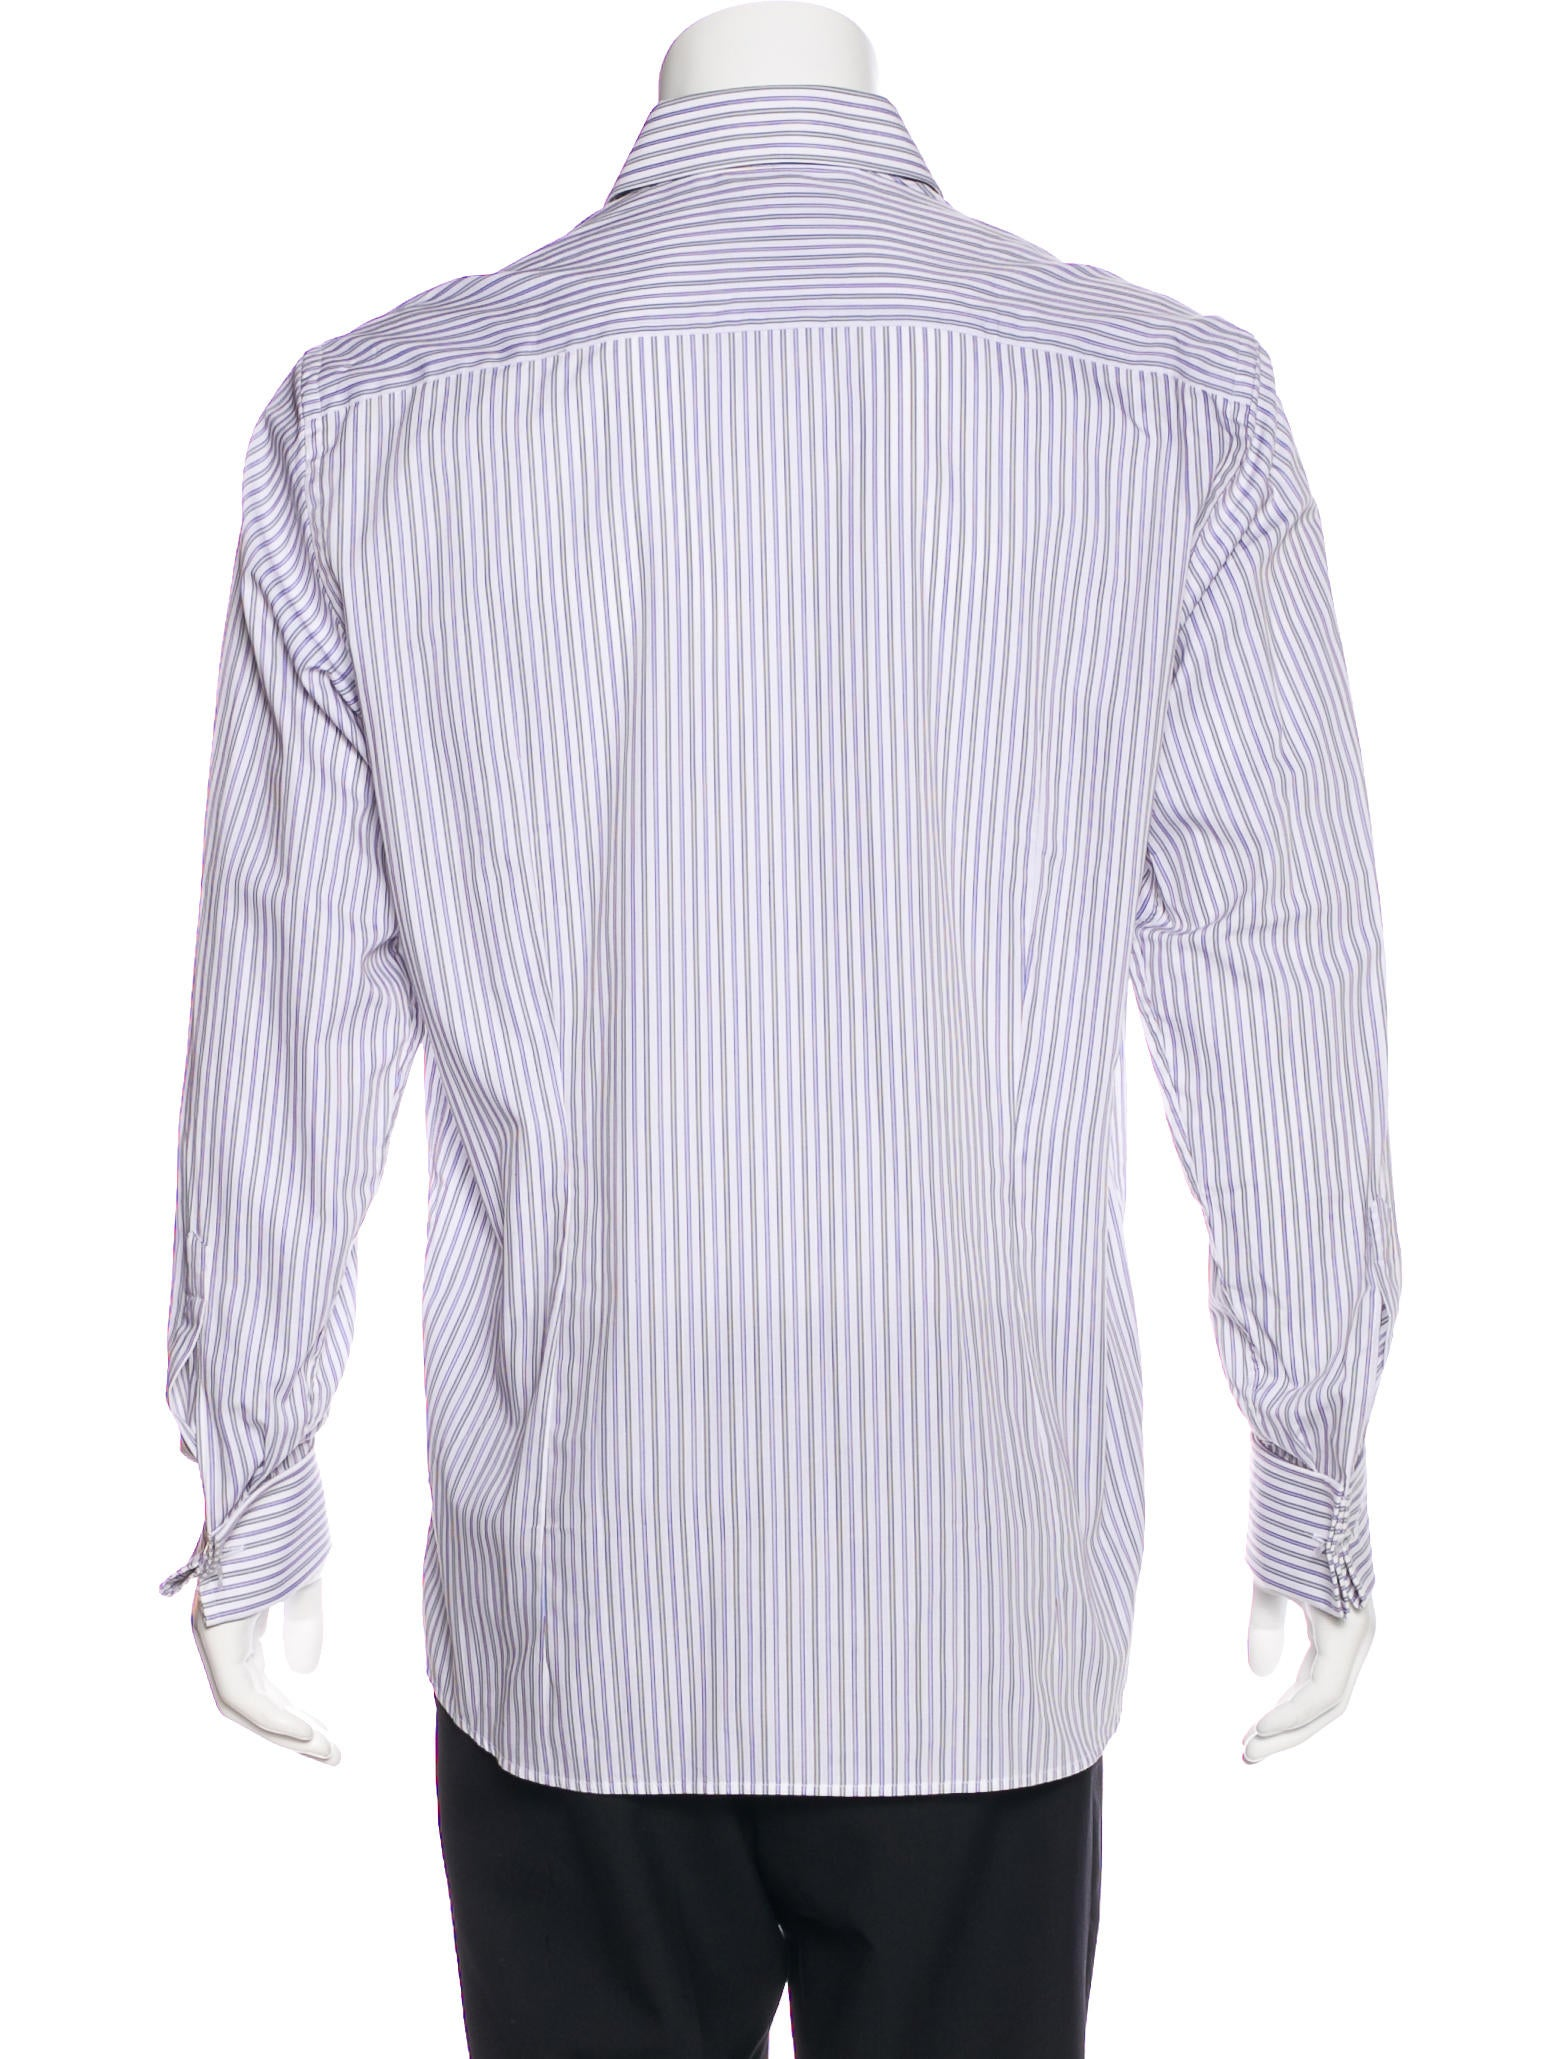 dolce gabbana striped french cuff dress shirt clothing. Black Bedroom Furniture Sets. Home Design Ideas